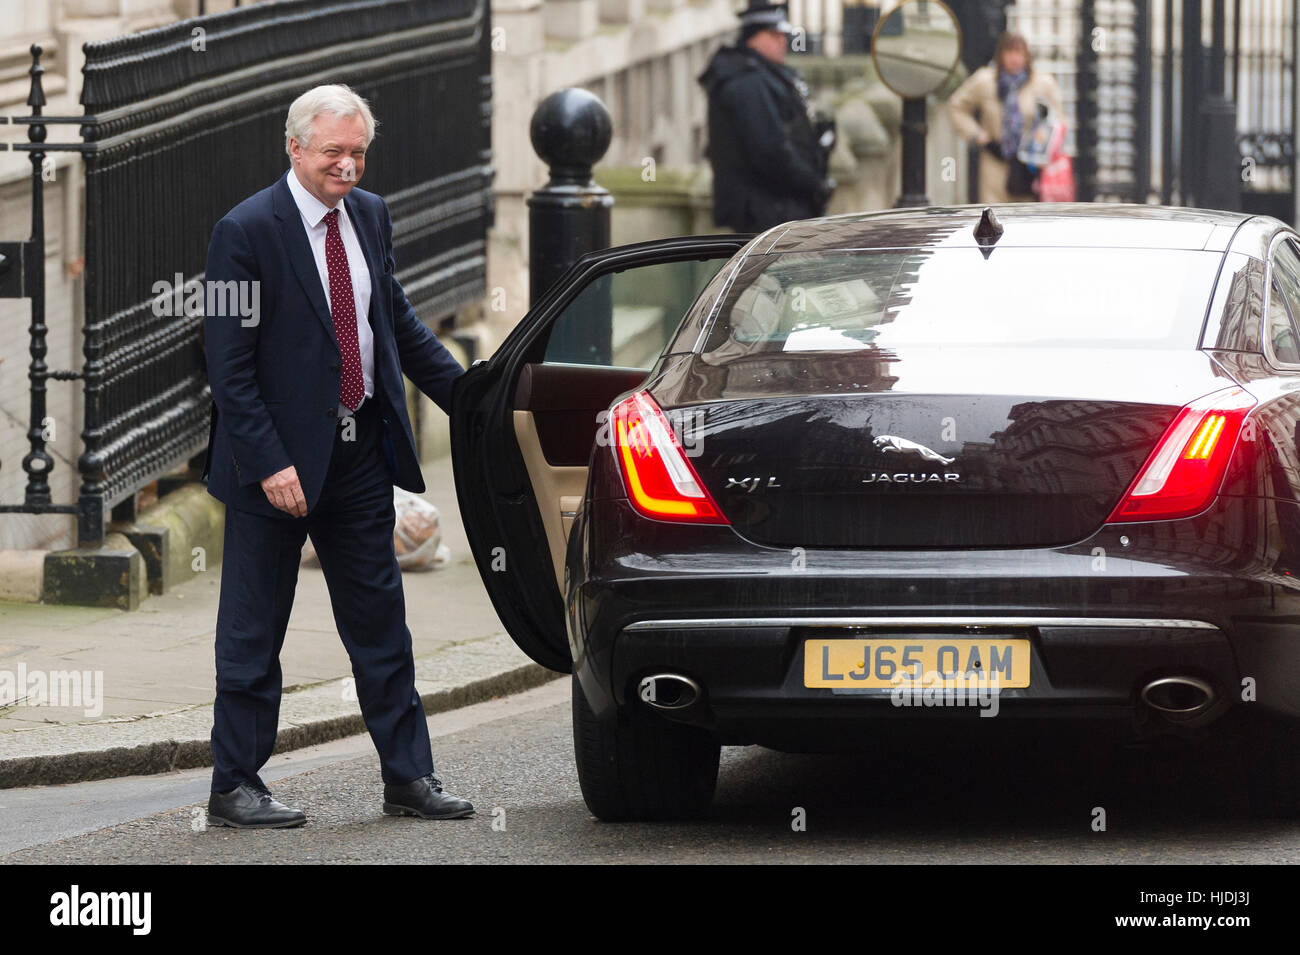 London, UK. 25th January, 2017. David Davis MP, Secretary of State for Exiting the European Union, leaving Downing - Stock Image